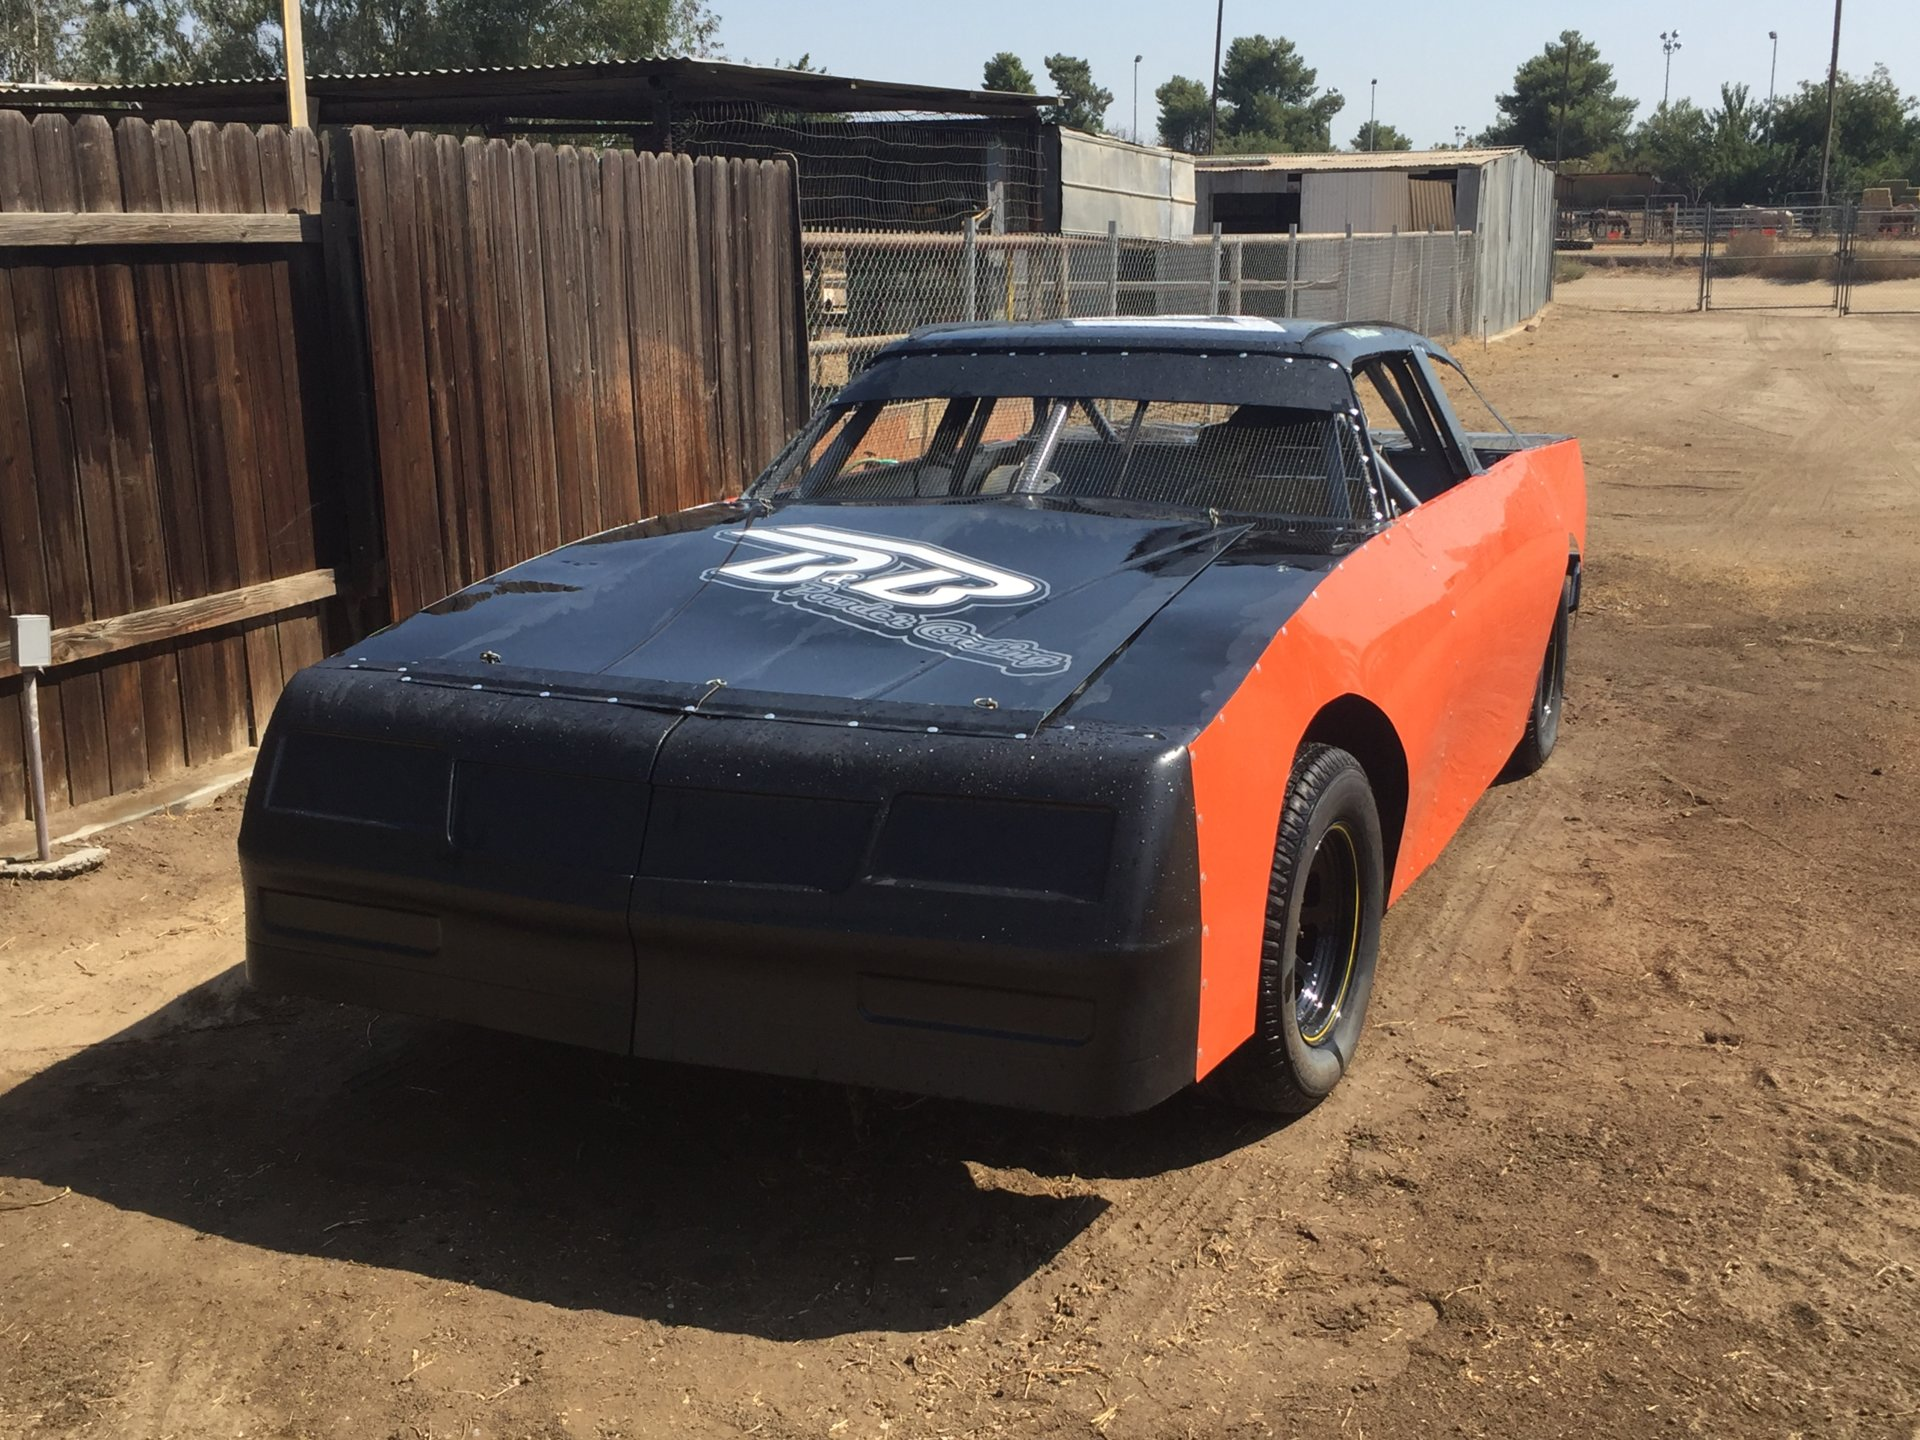 Hobby stock / dirt track / oval track race car | Bloodydecks